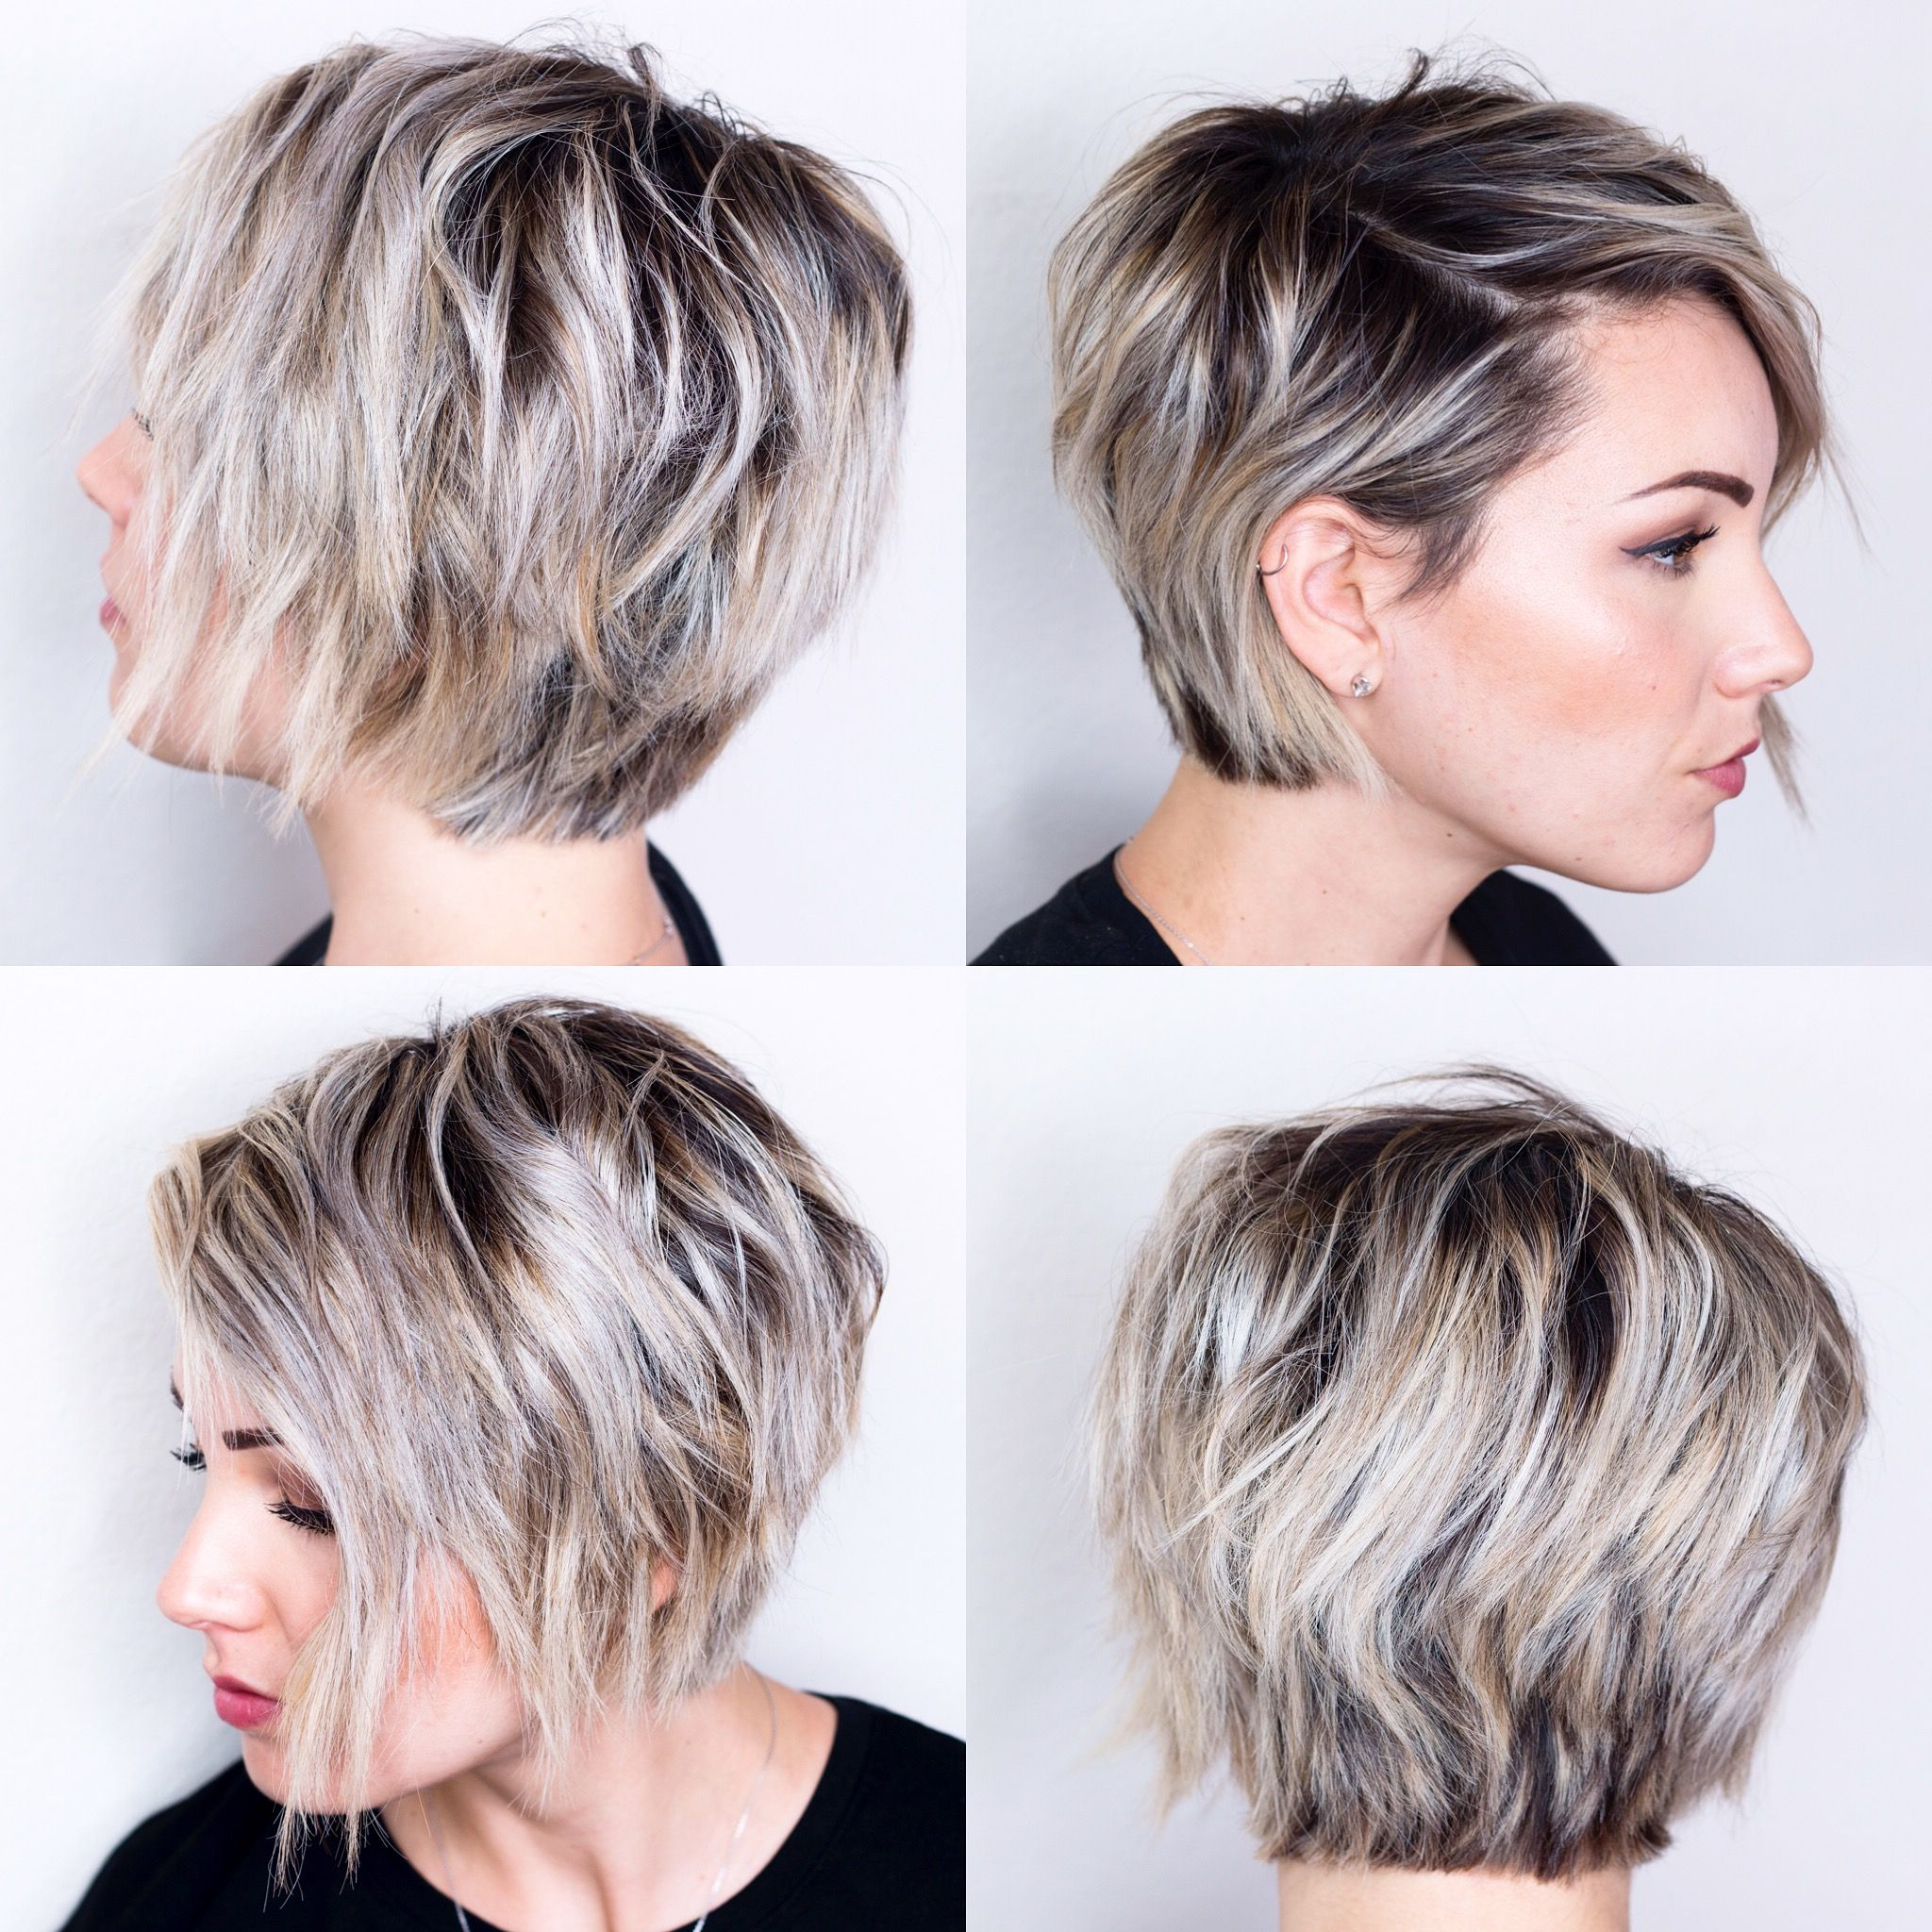 360 View Of Short Hair | H A I R In 2018 | Pinterest | Short Hair Intended For Short Haircuts For Chubby Oval Faces (View 10 of 25)